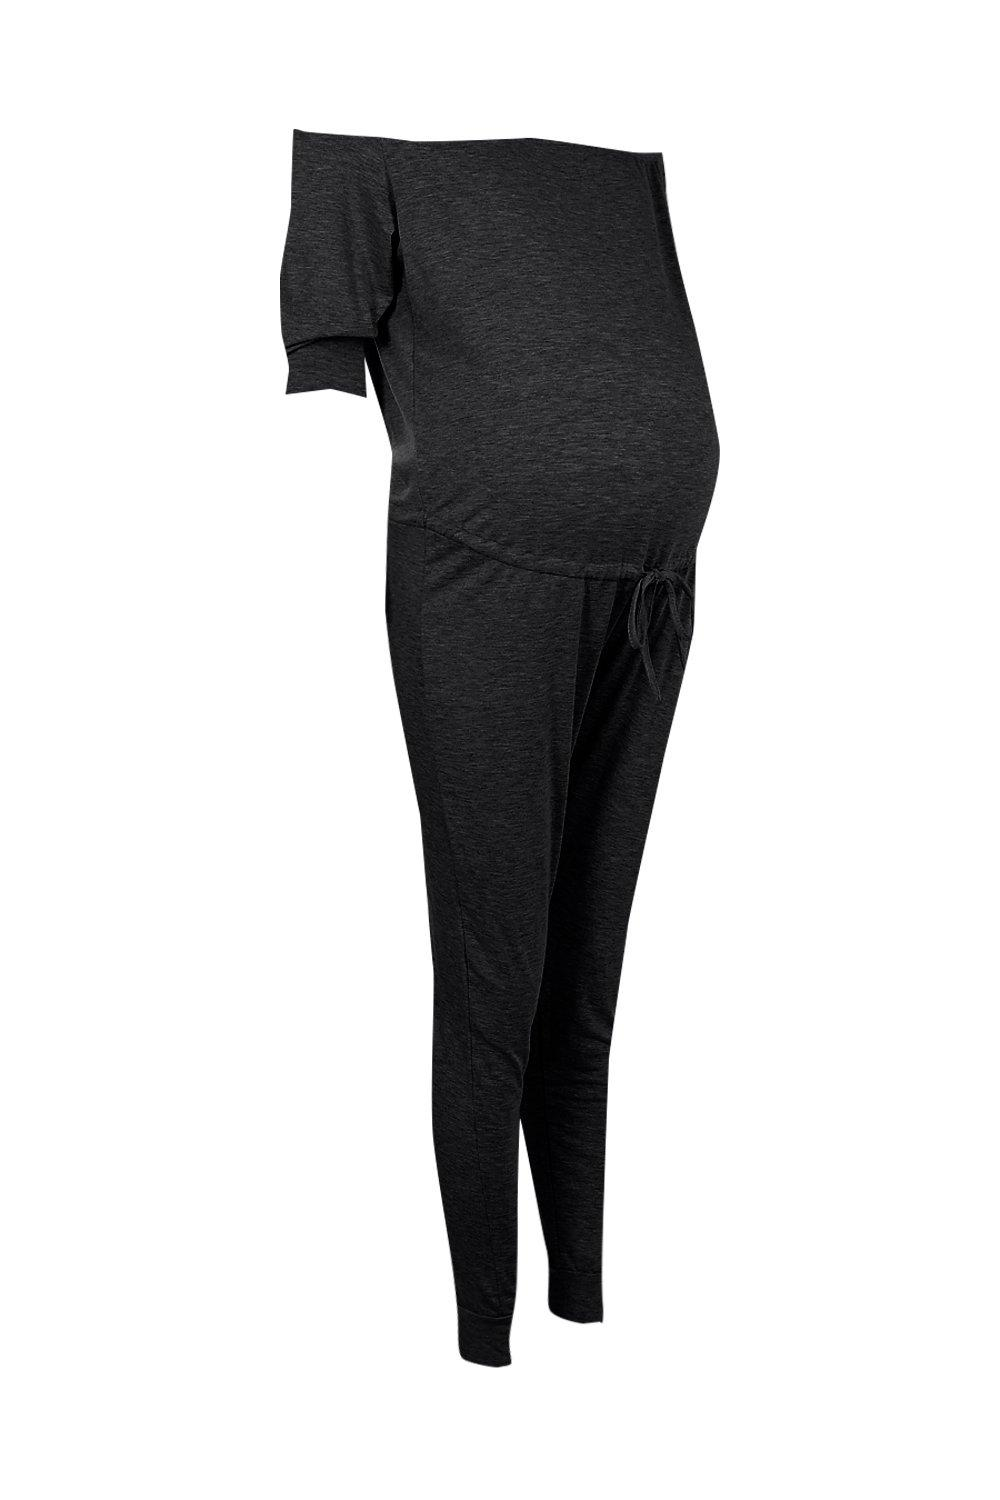 020f6551546 Lyst - Boohoo Maternity Ruby Off The Shoulder Lounge Jumpsuit in Black